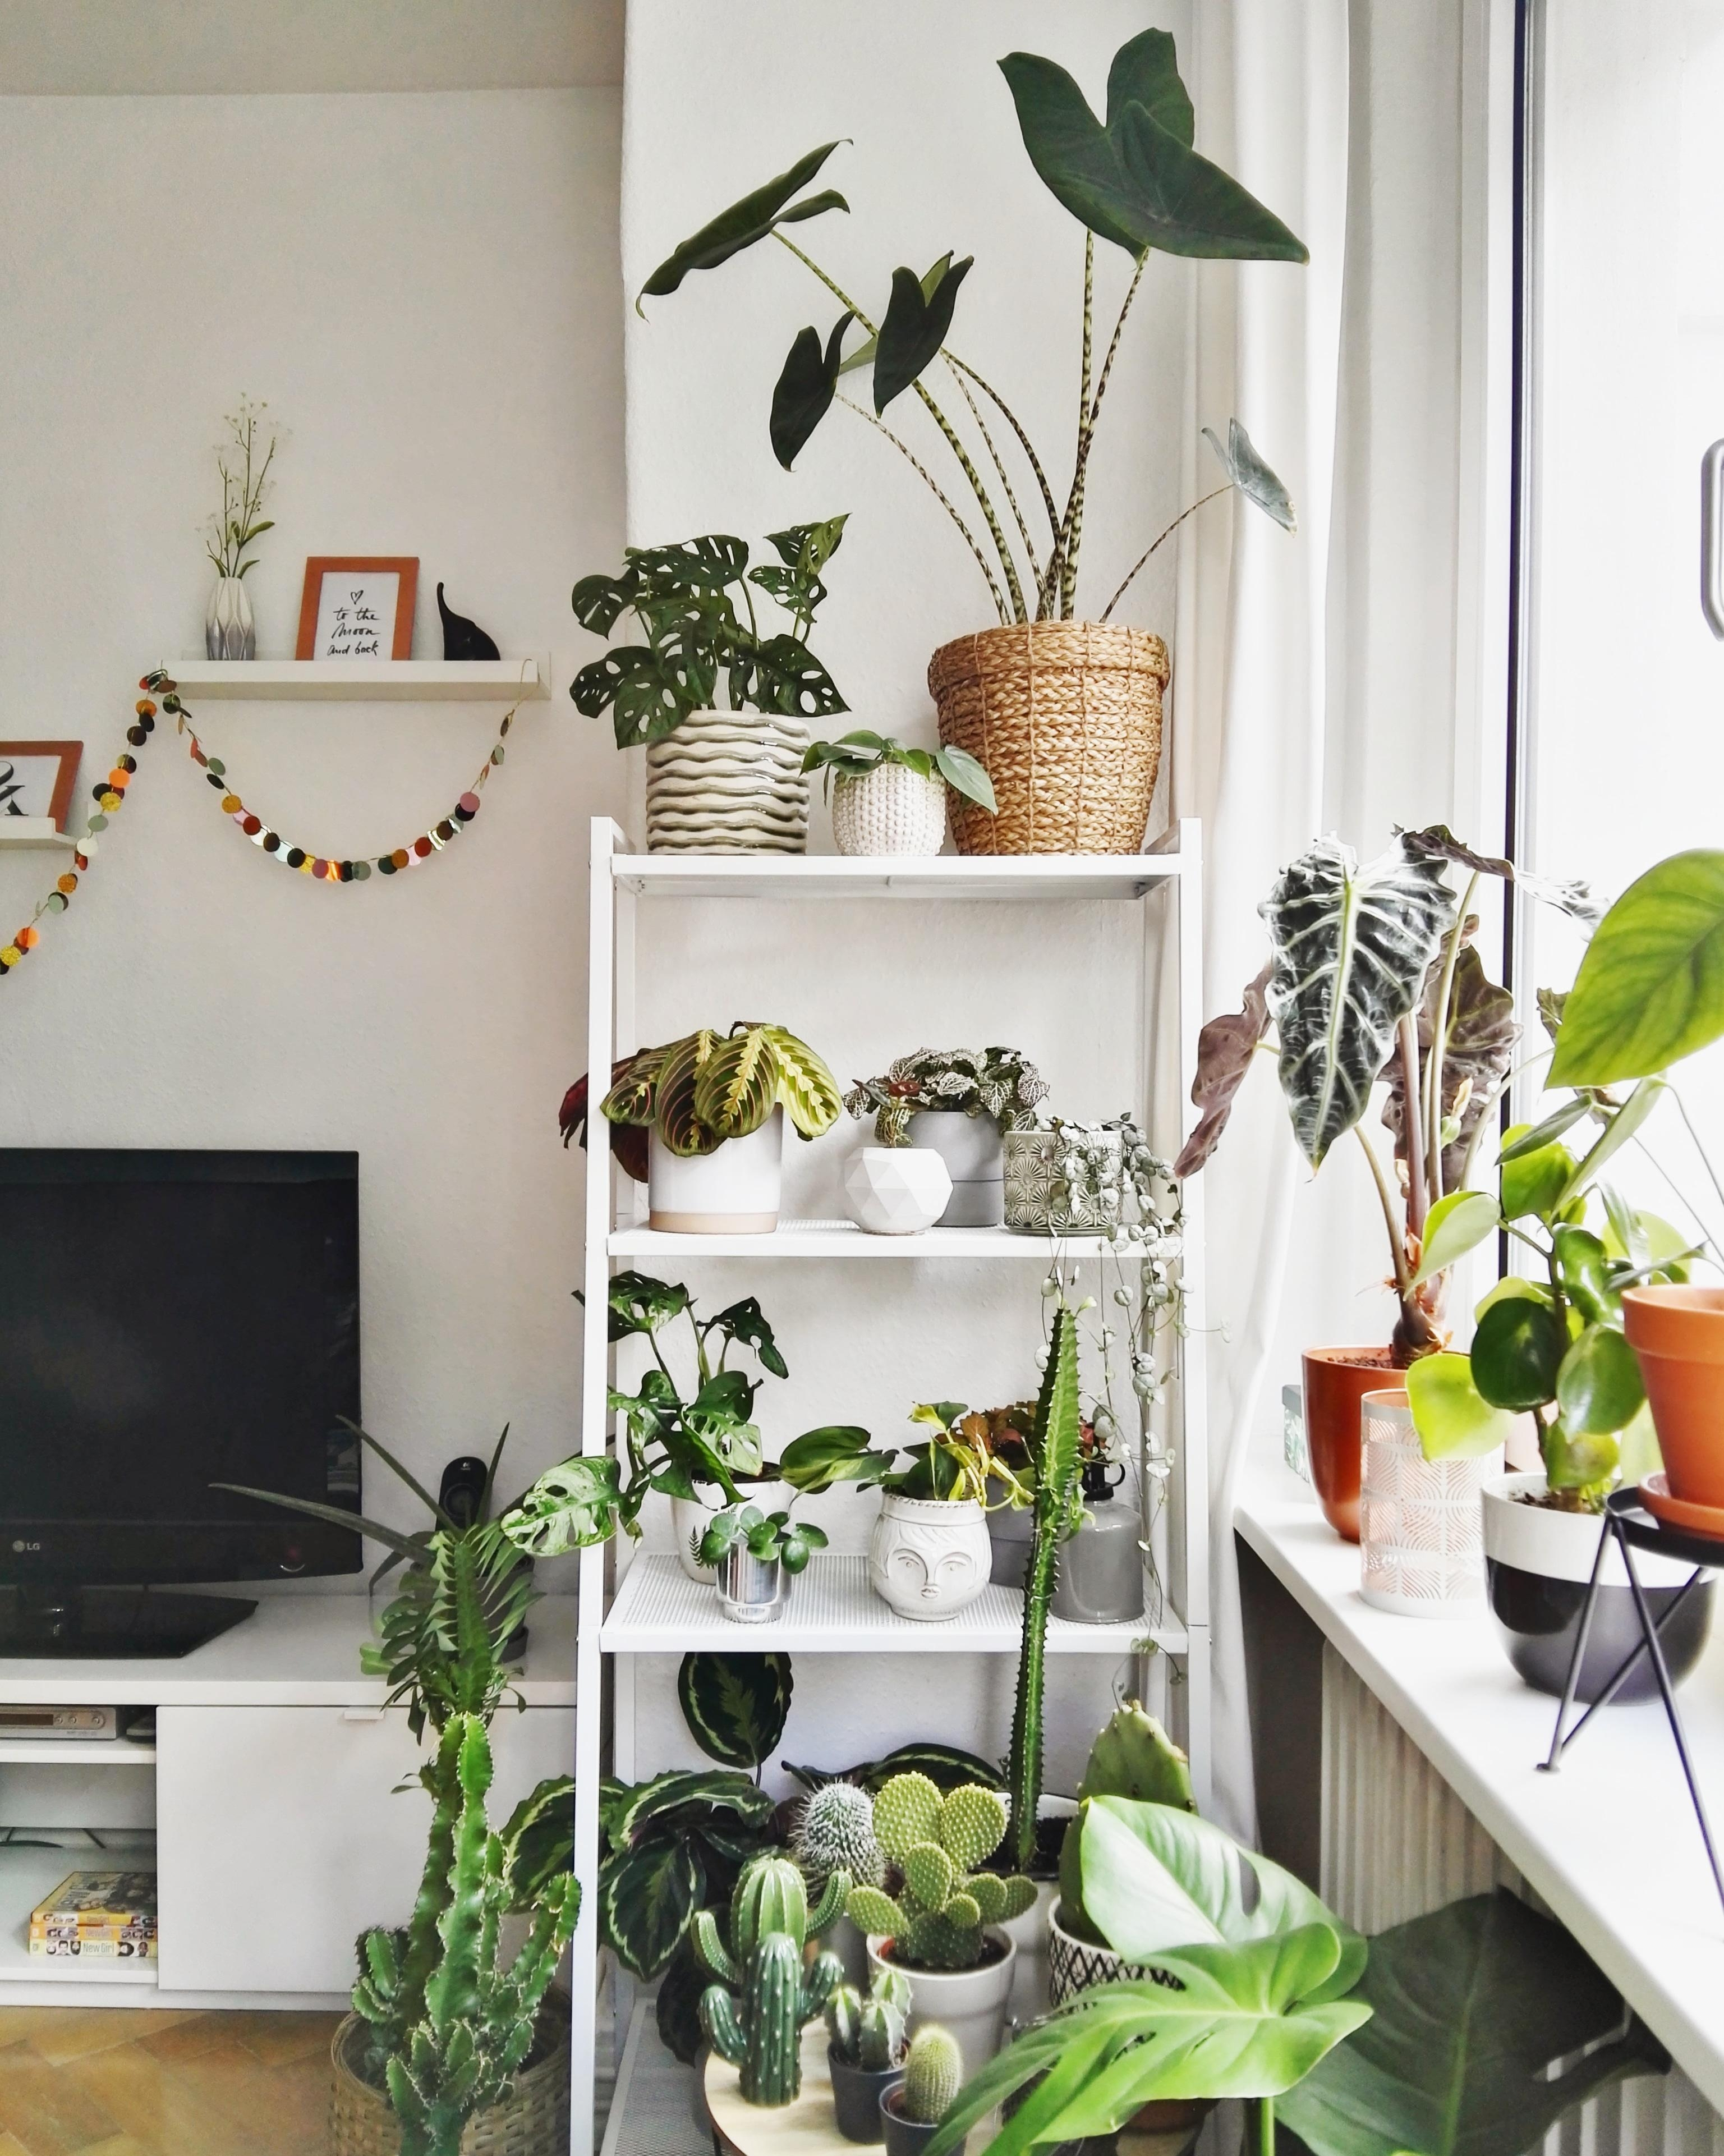 Neues Pflanzenregal #plantshelfie #interior #livingroom #urbanjungle #plantlover #plantgang